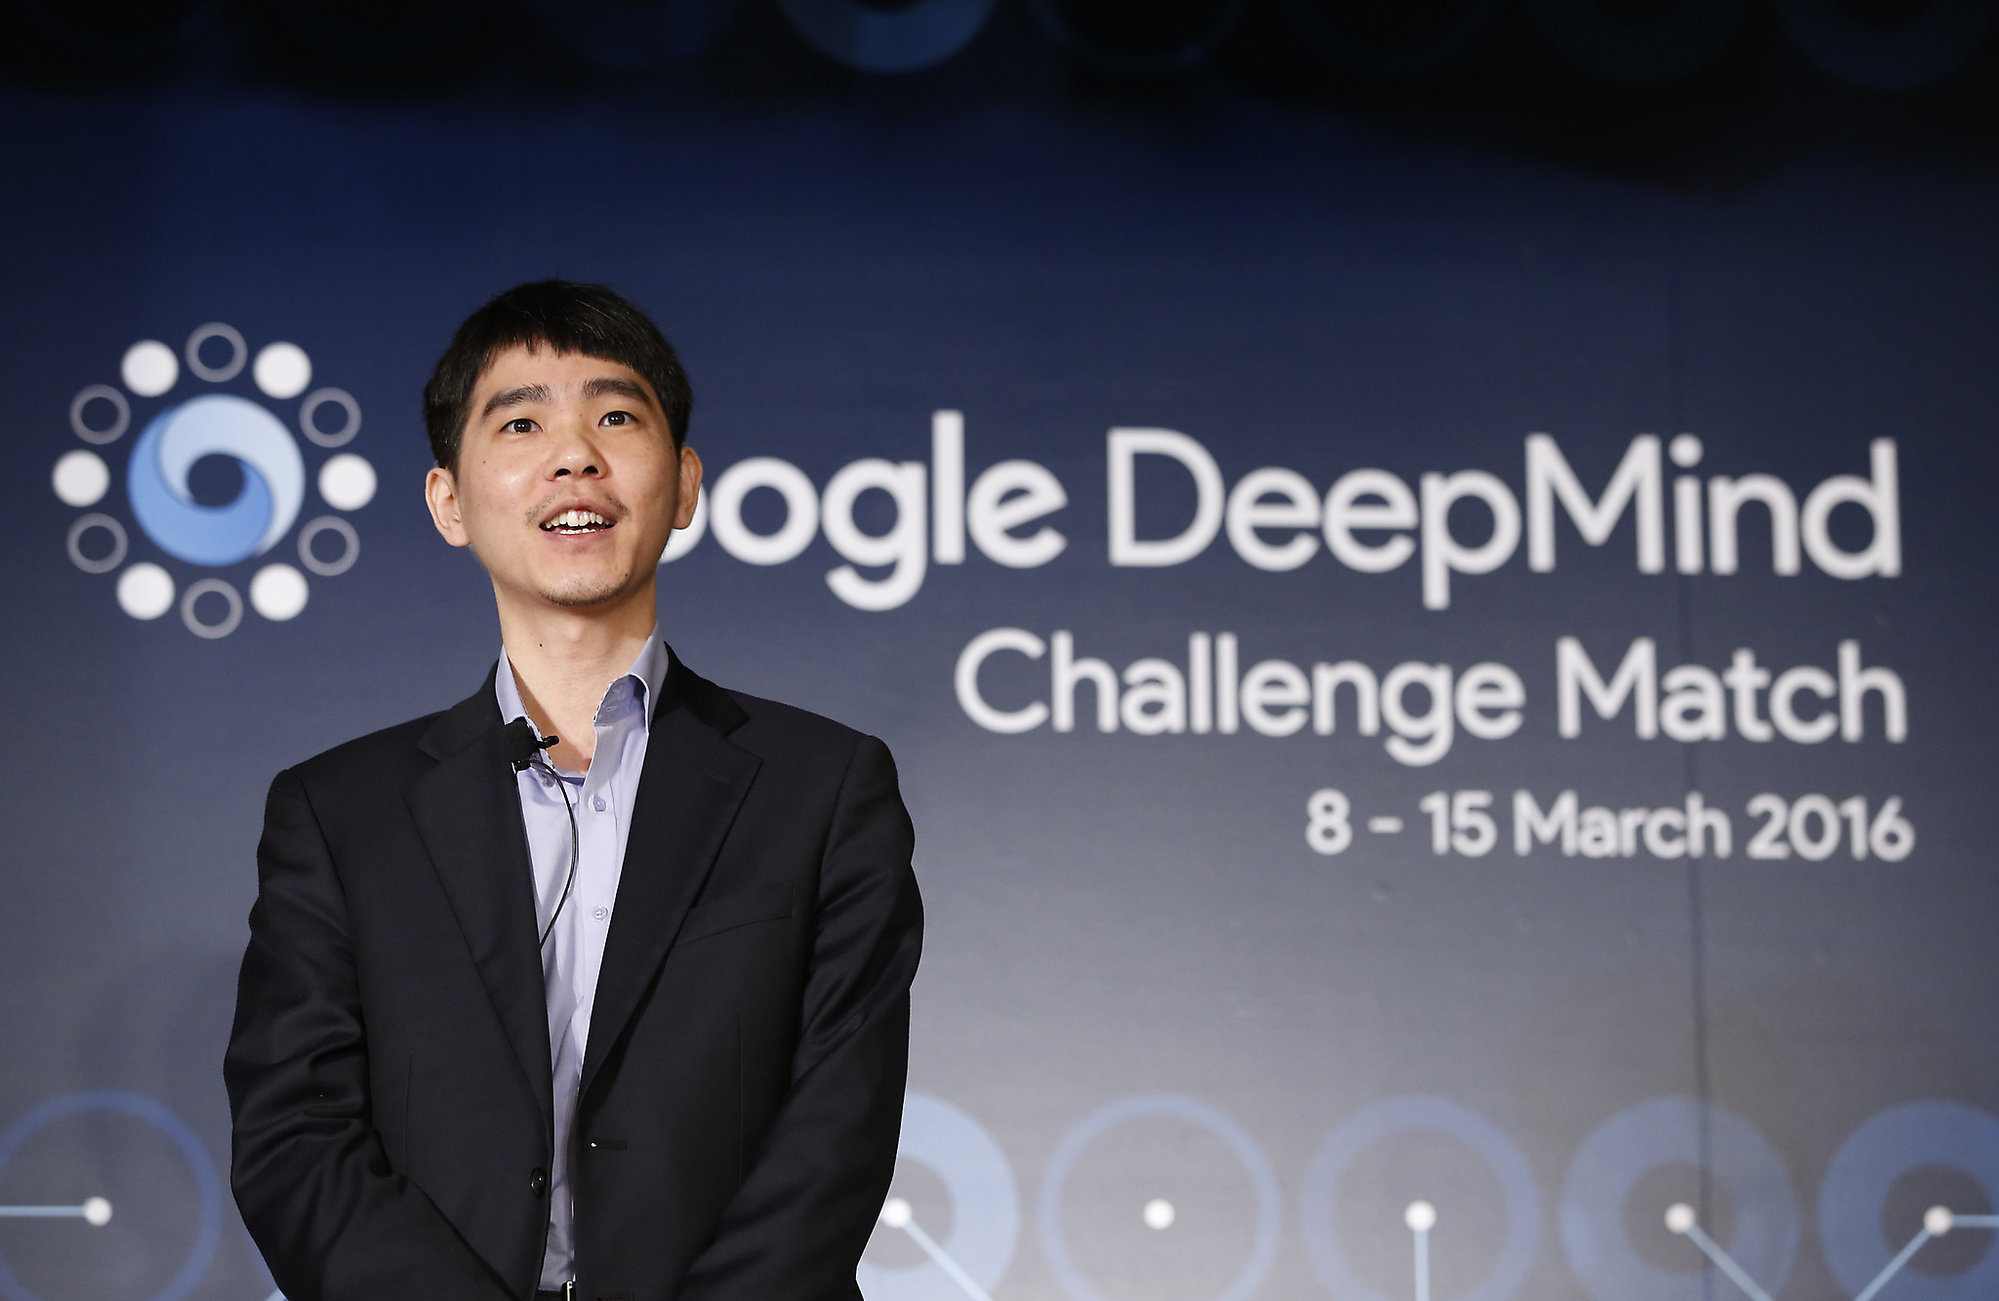 AlphaGo vs. Lee Sedol: Levenshtein Distance